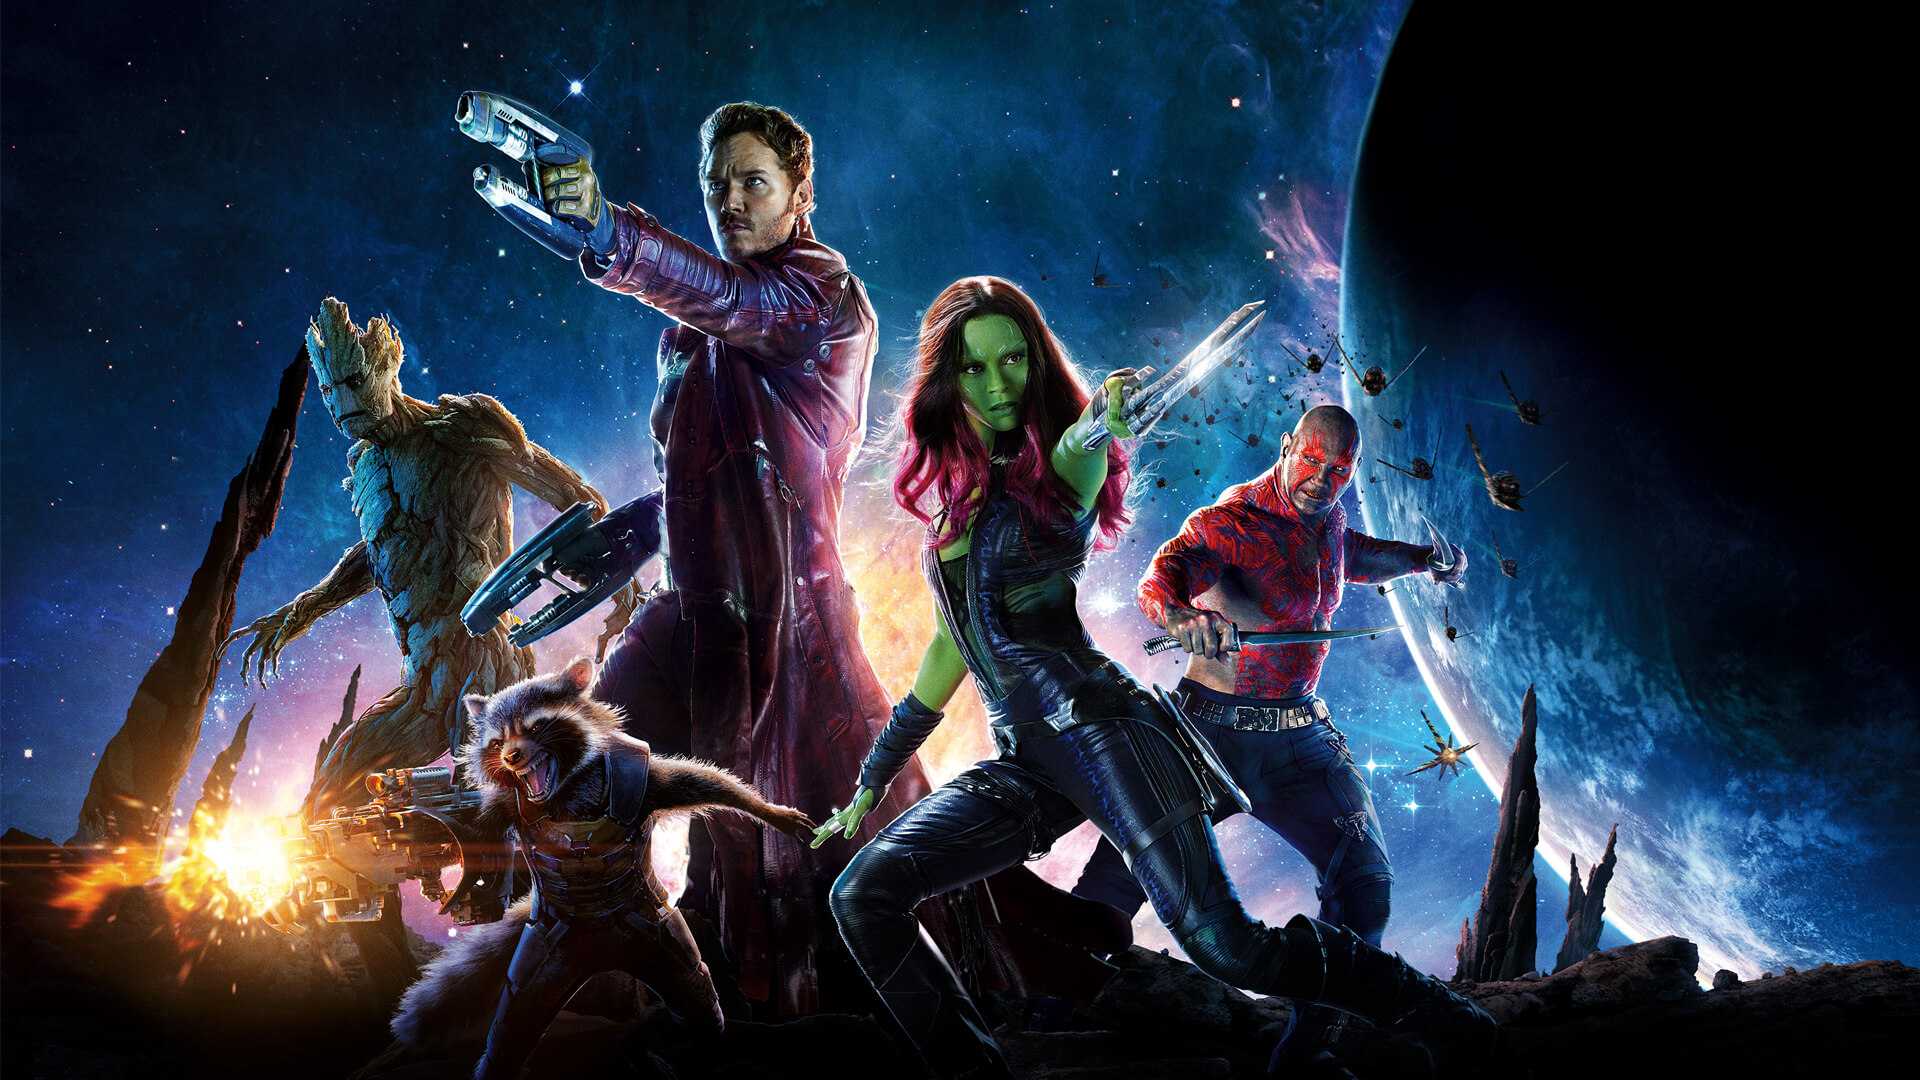 Guardians of the Galaxy Officially Has Most On-Screen Deaths